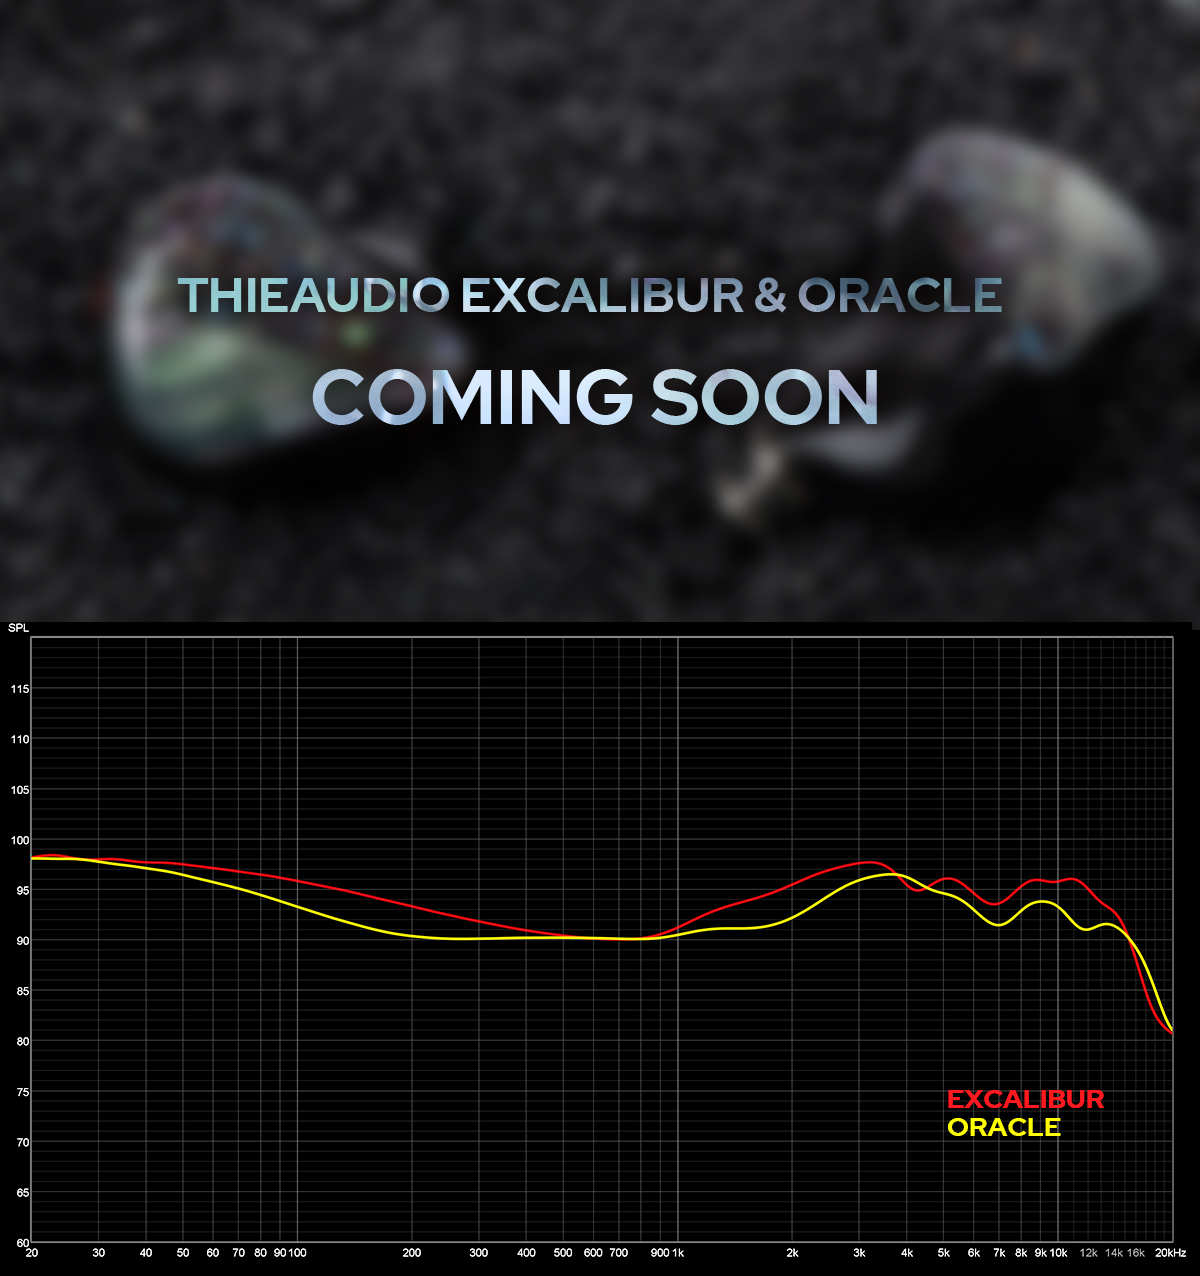 THIEAUDIO_Excalibur_and_Oracle_Coming_Soon.jpeg